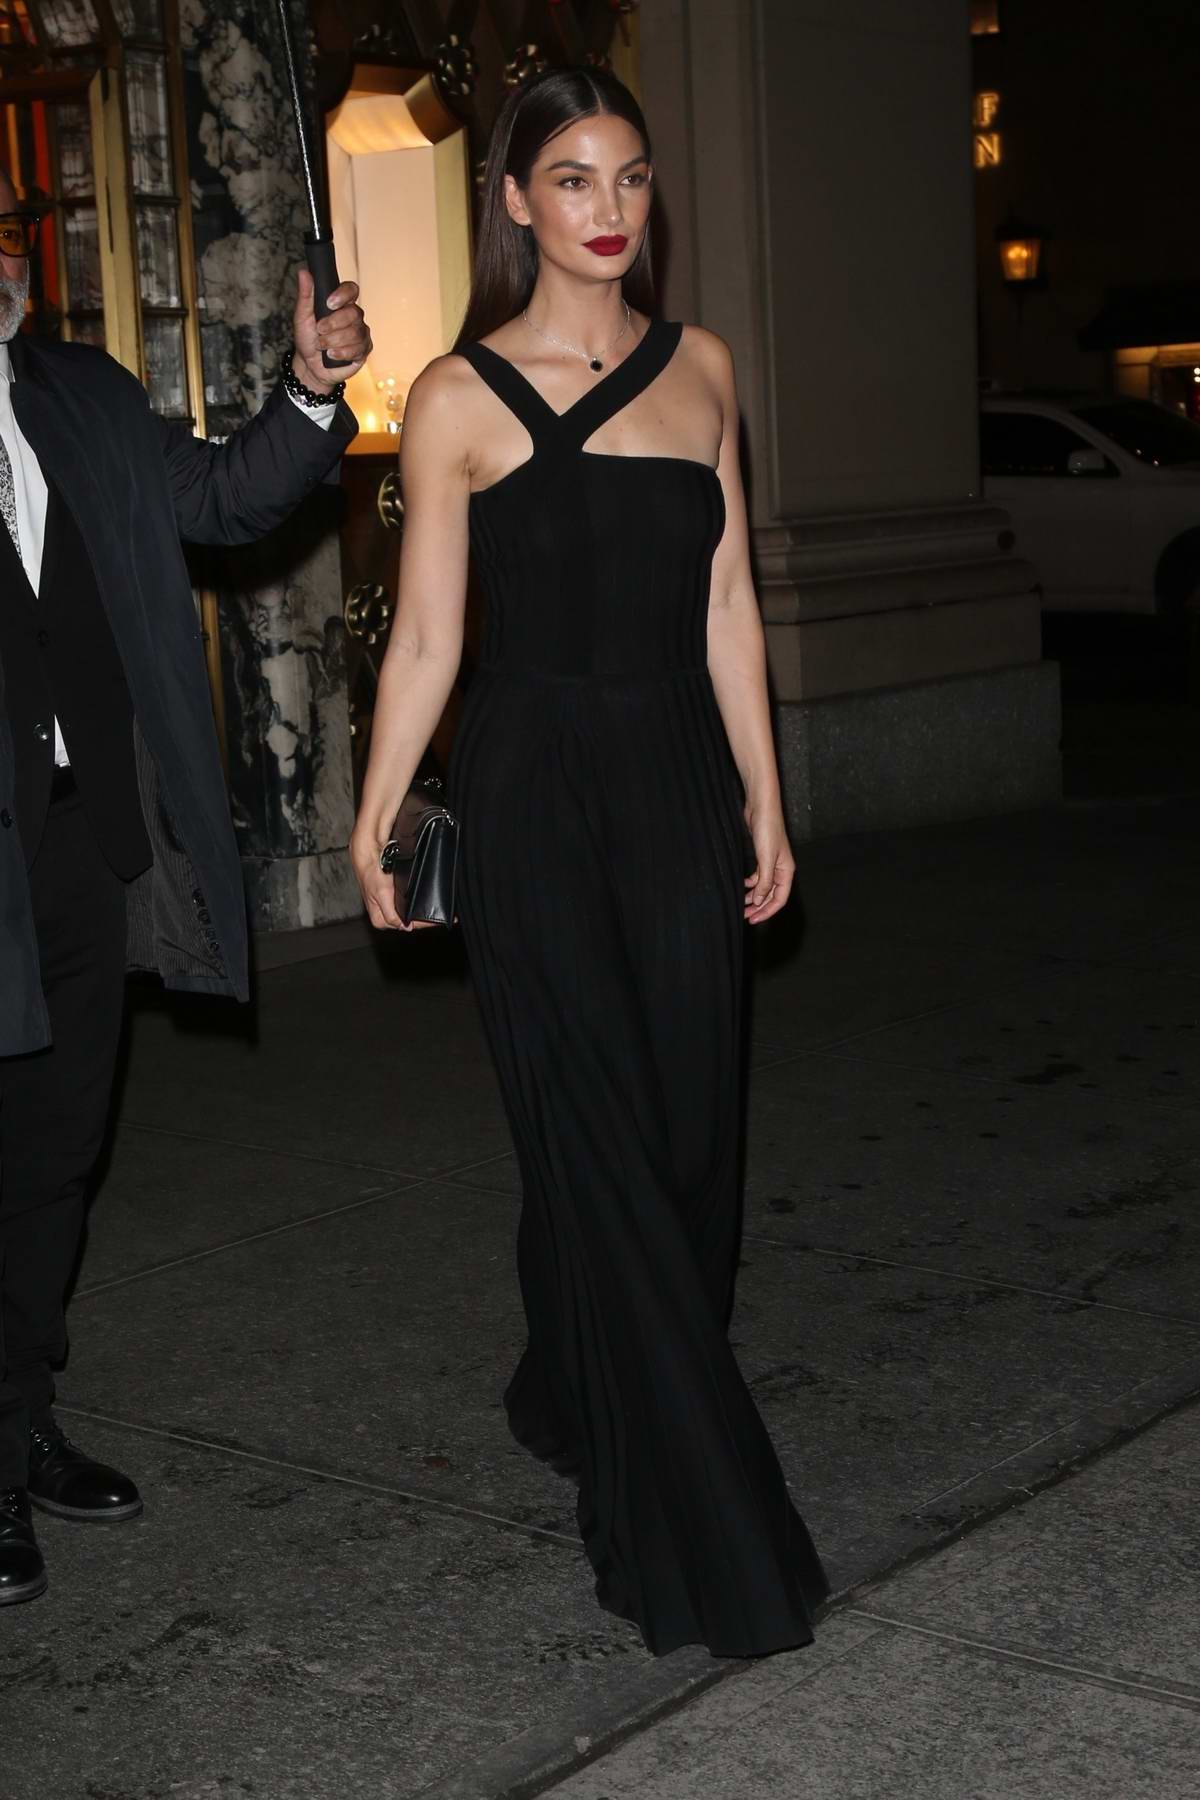 Lily Aldridge looks elegant in a black gown as she leaves a Bulgari event in New York City